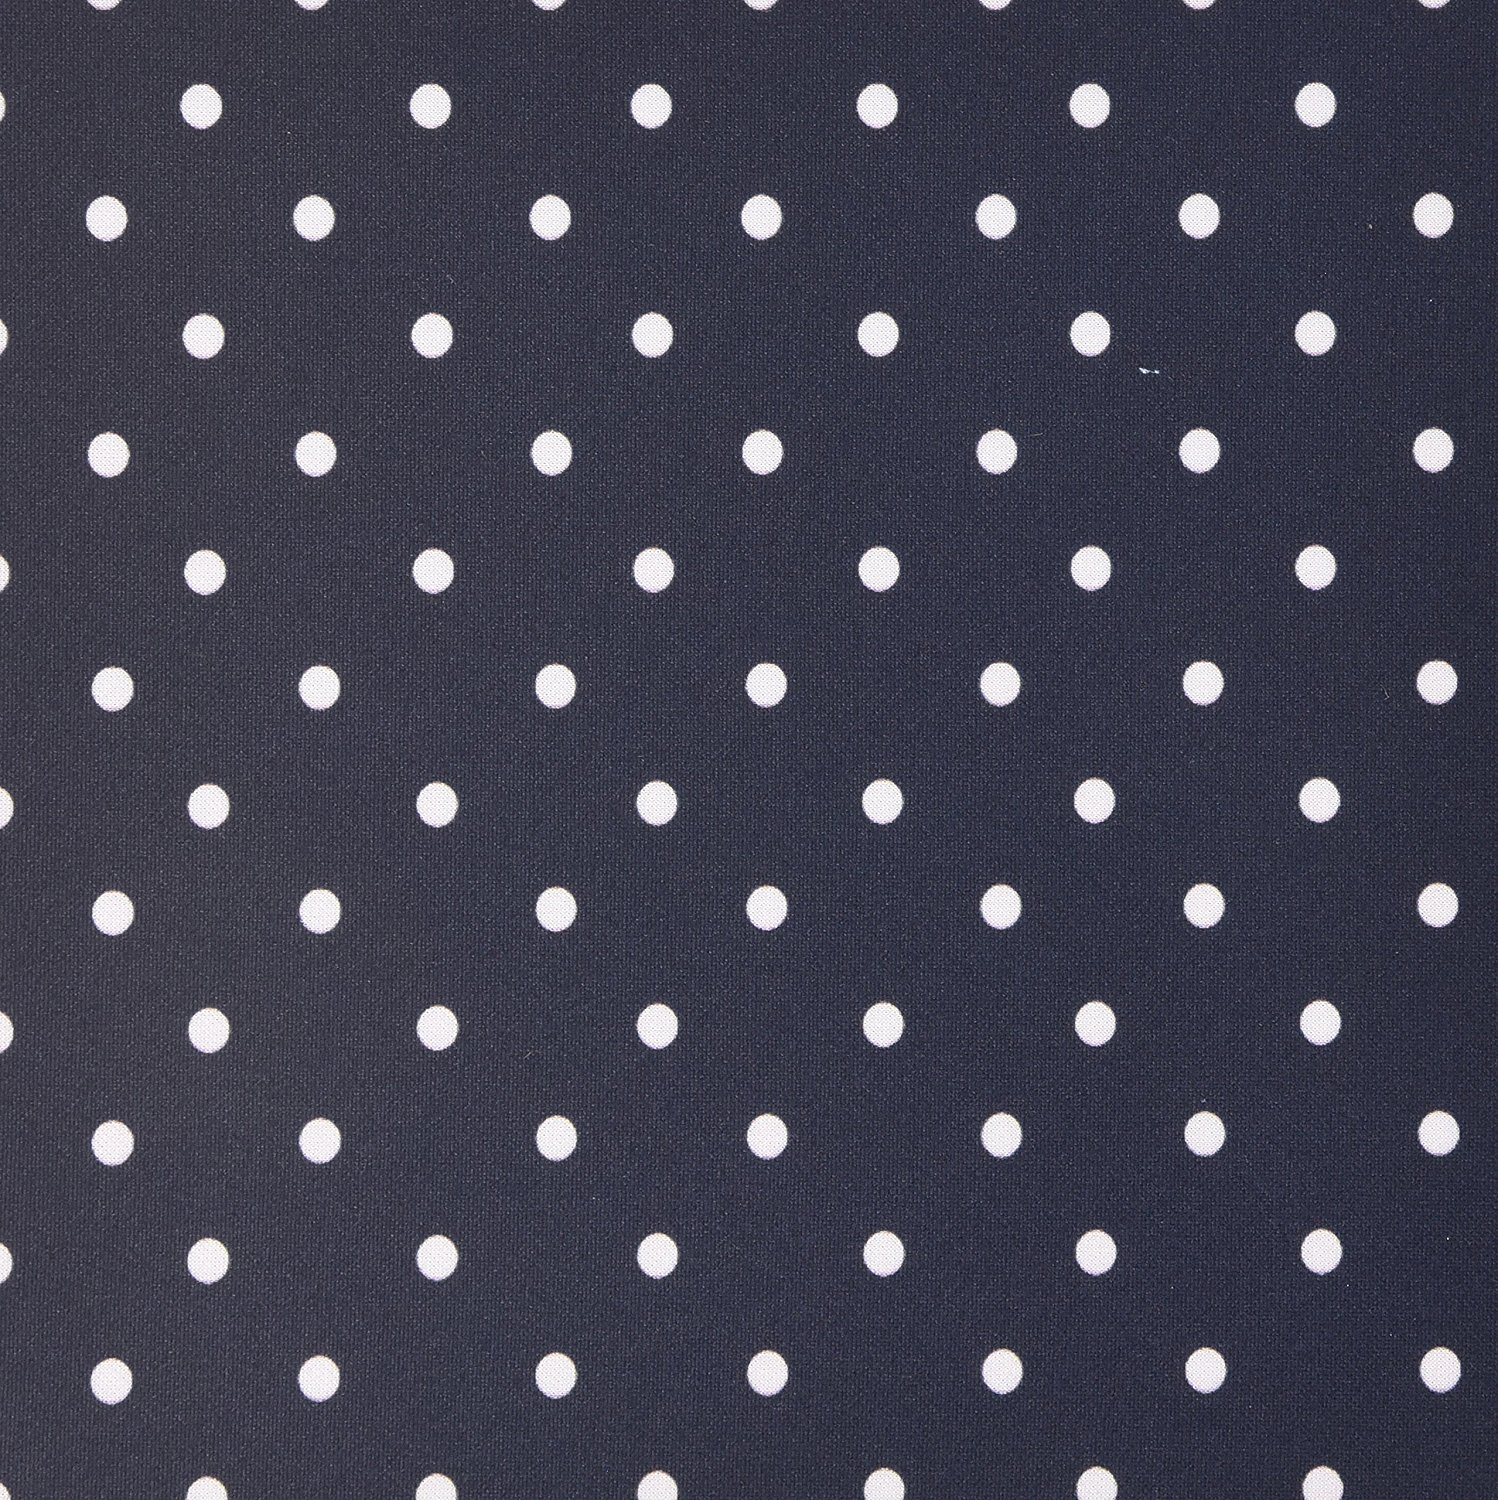 3dRose LLC 8 x 8 x 0.25 Inches Mouse Pad, Black and White Polka Dot Pattern Small Dots Stylish Classic Classy Elegant Retro Dotty Spotty (mp_120245_1)